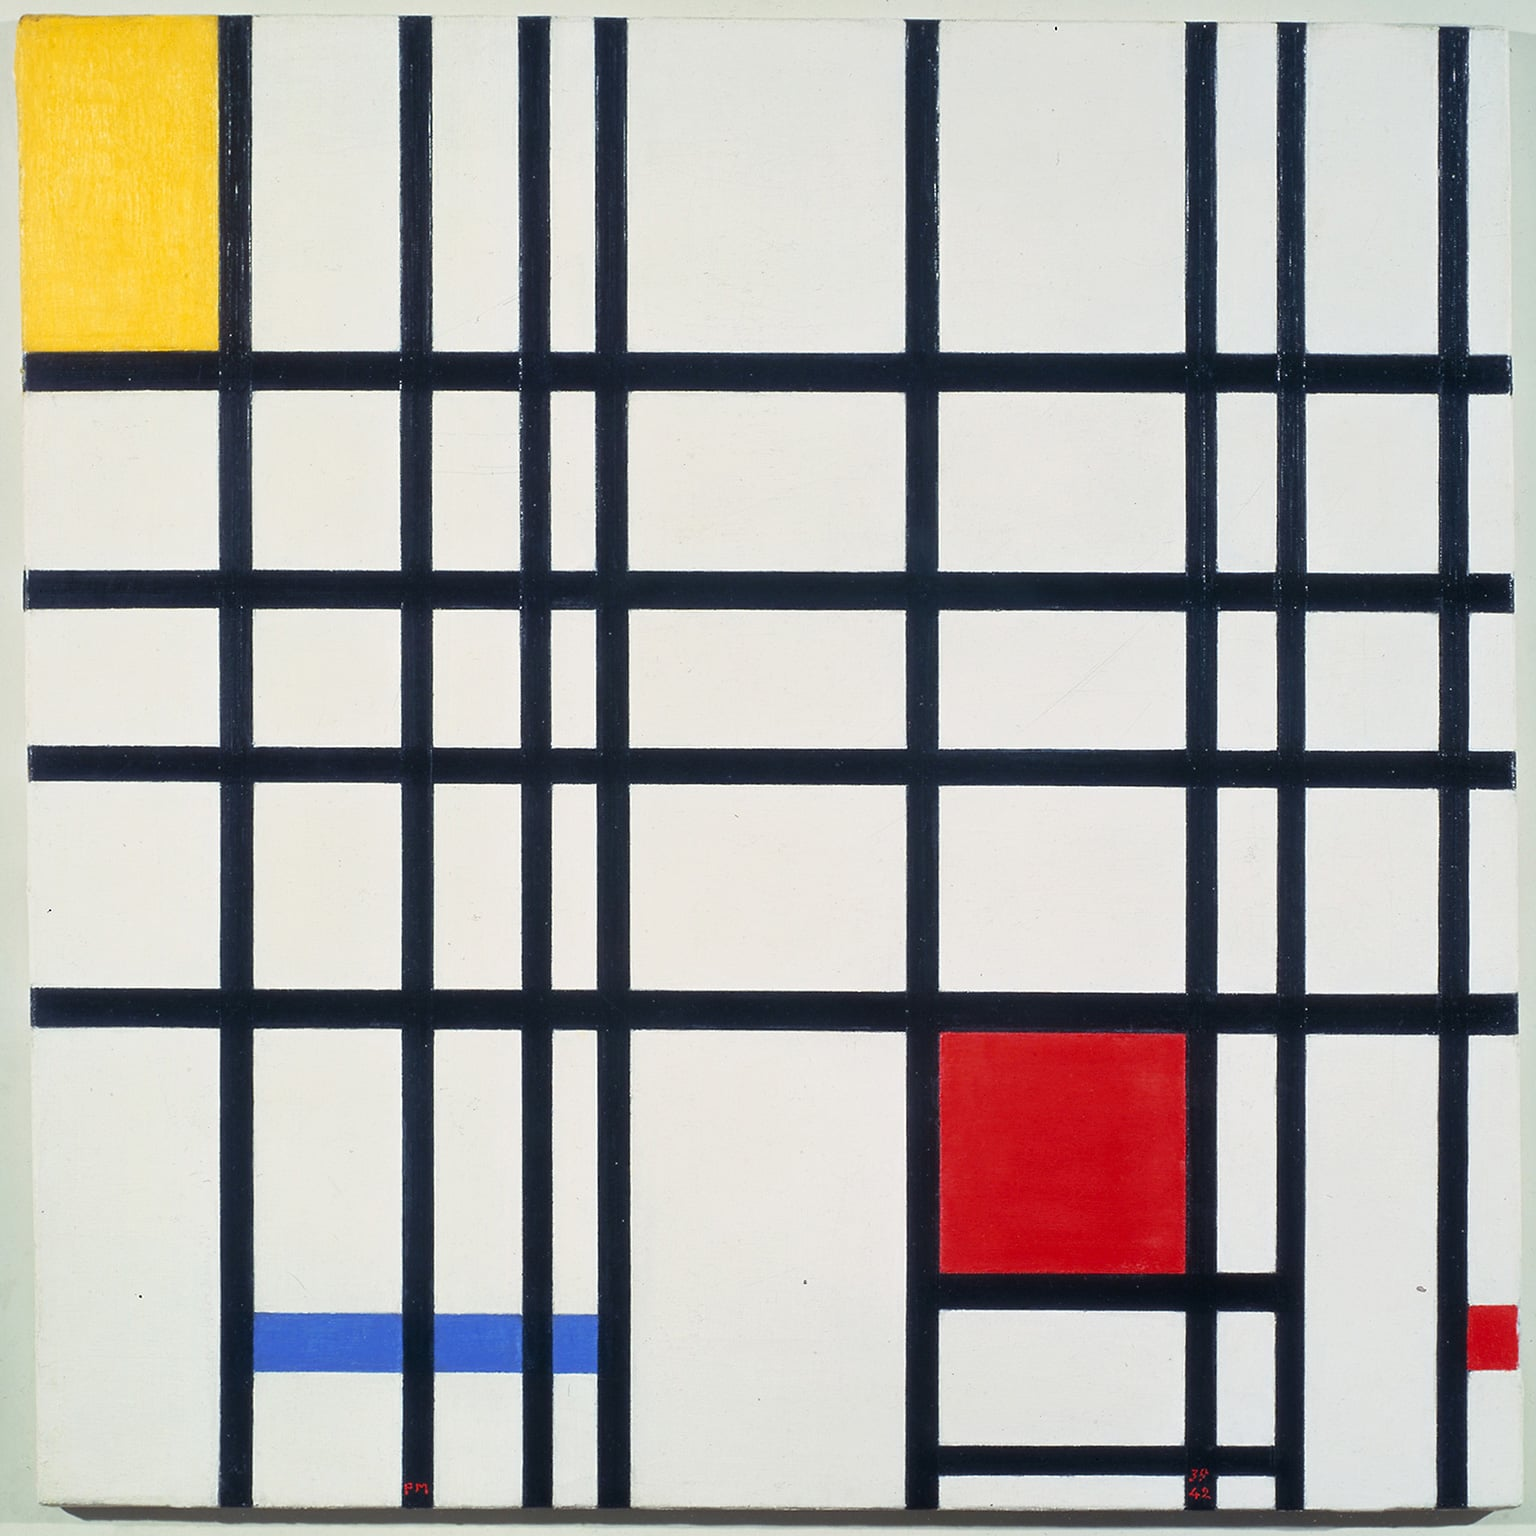 1. Mondrian and Colour, Turner Contemporary, Margate, 24 May - 21 September/ Mondrian and his Studios, Tate Liverpool, 6 June - 5 October. 50% off entry with National Art Pass - Piet Mondrian, Composition with Yellow, Blue and Red 1937 – 42. © 2013 Mondrian/Holtzman Trust c/o HCR International